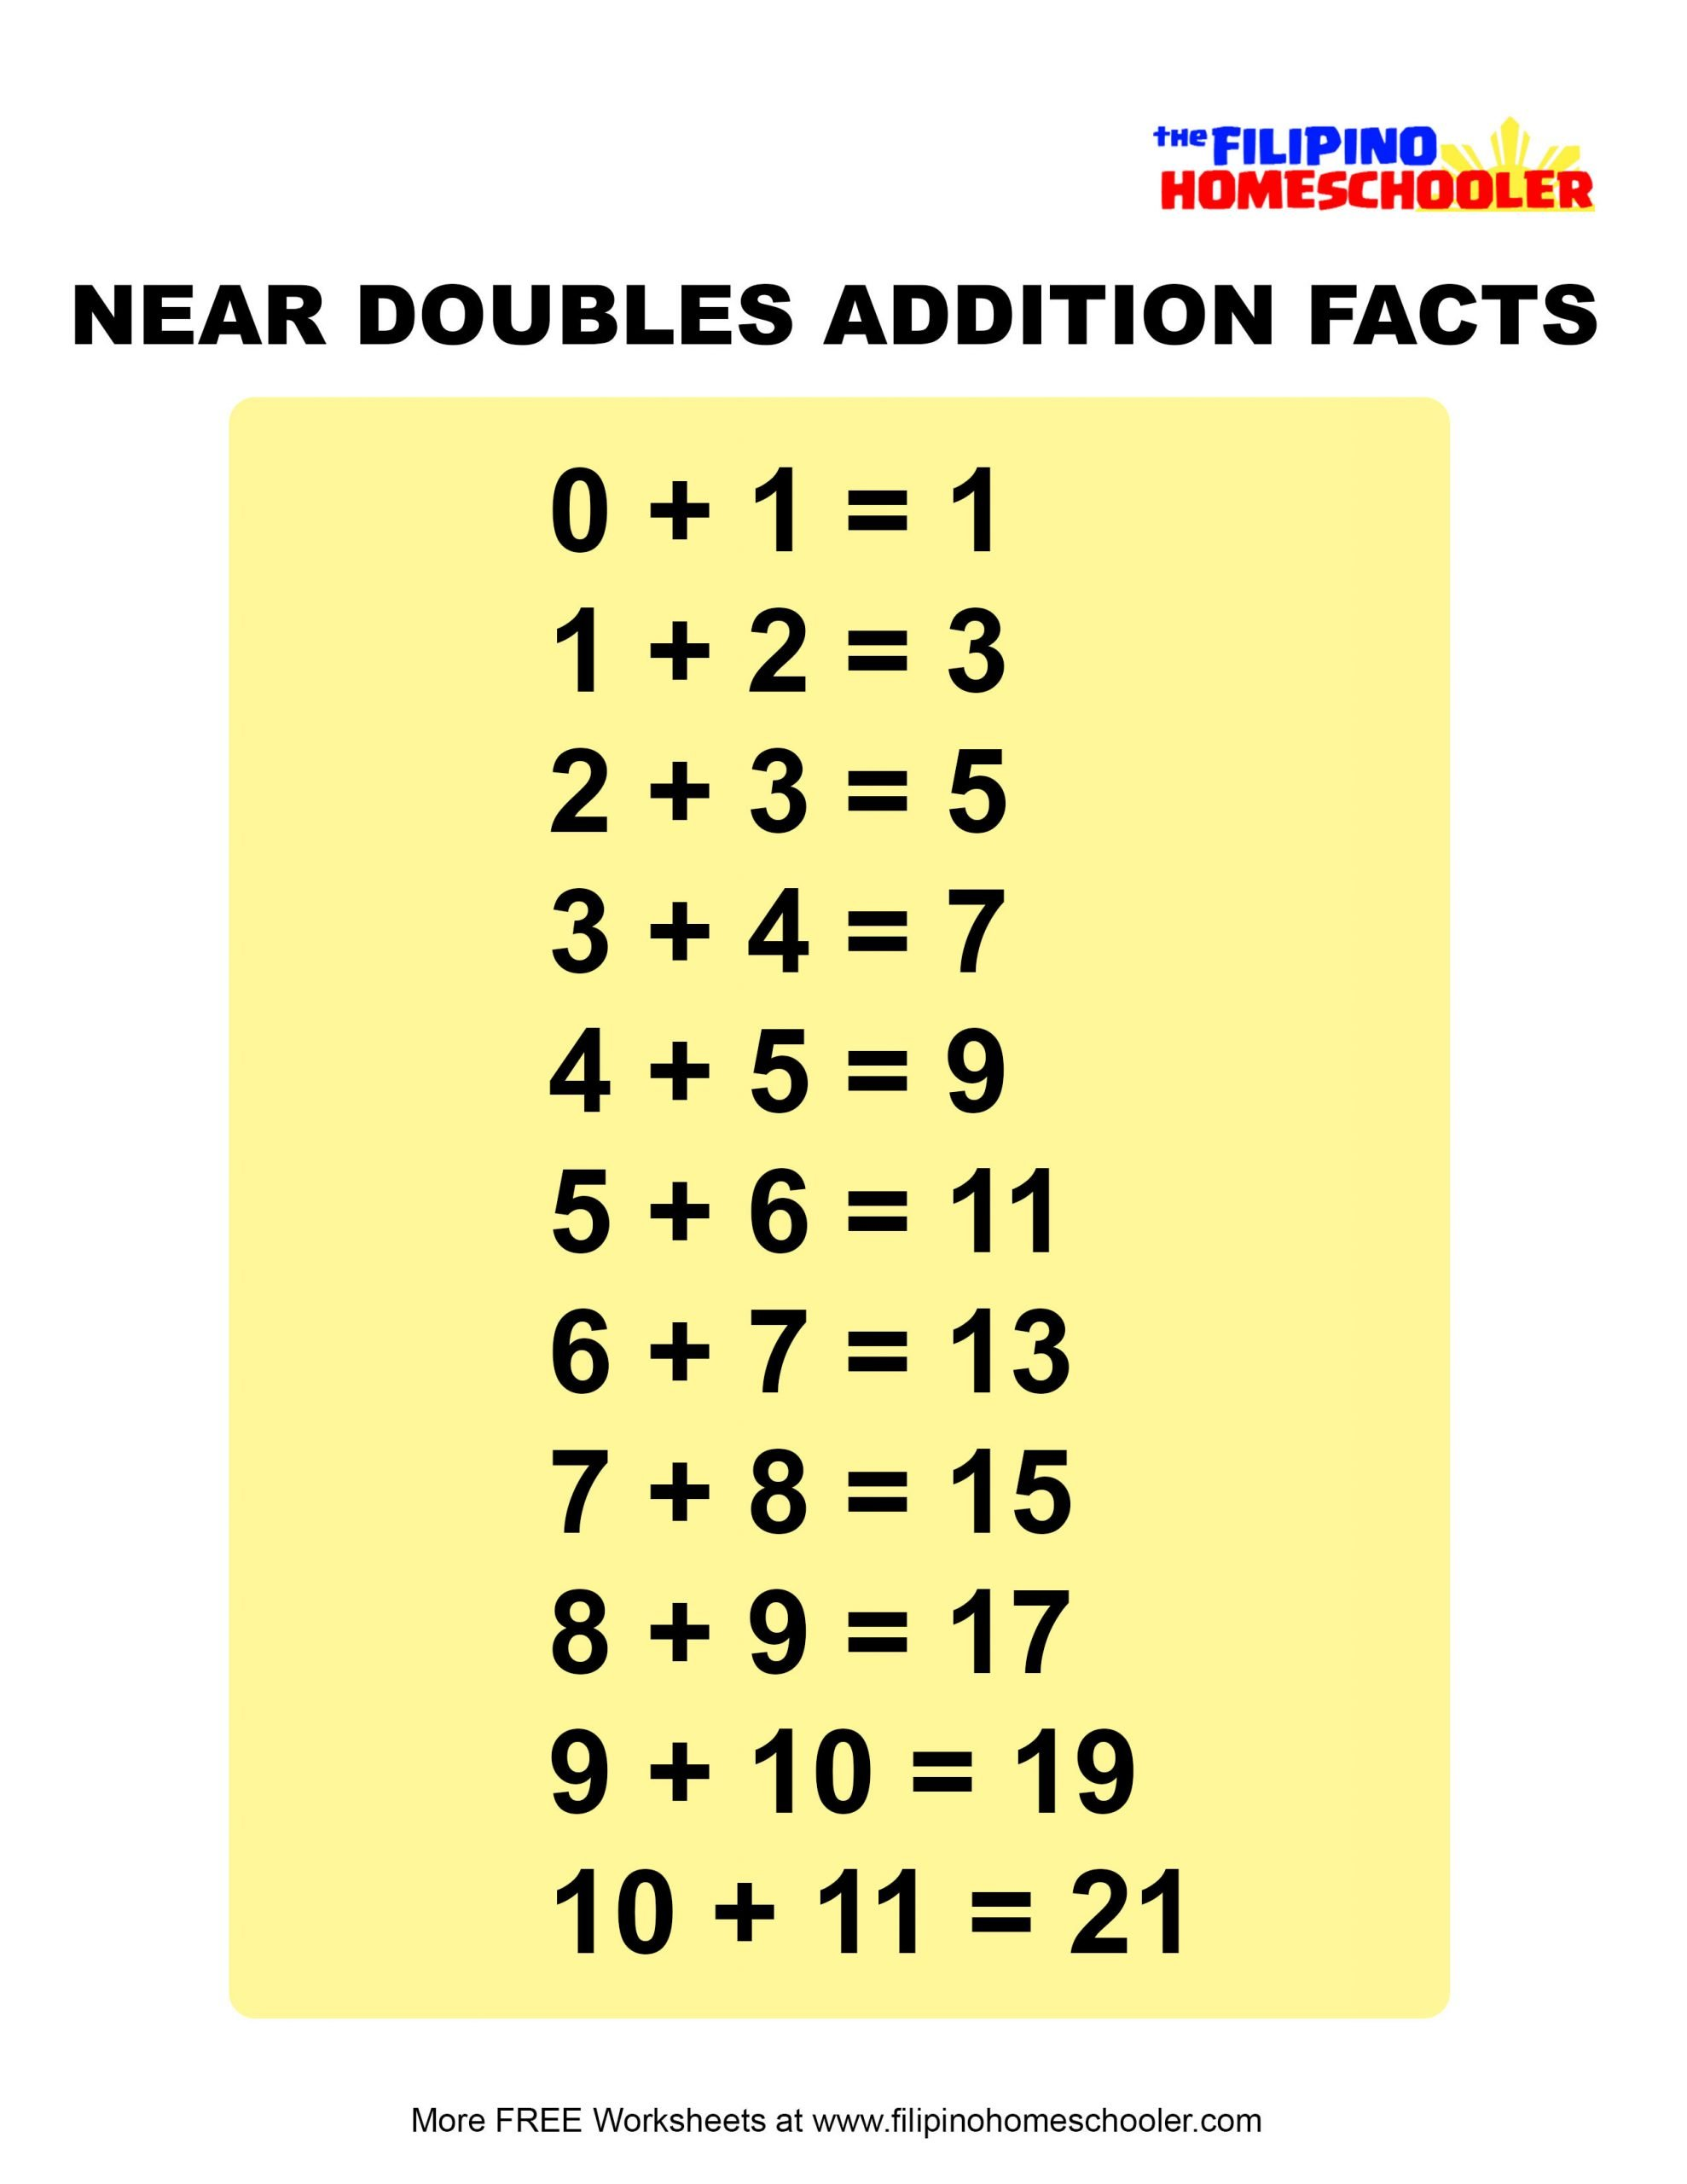 Addition Facts Near Doubles